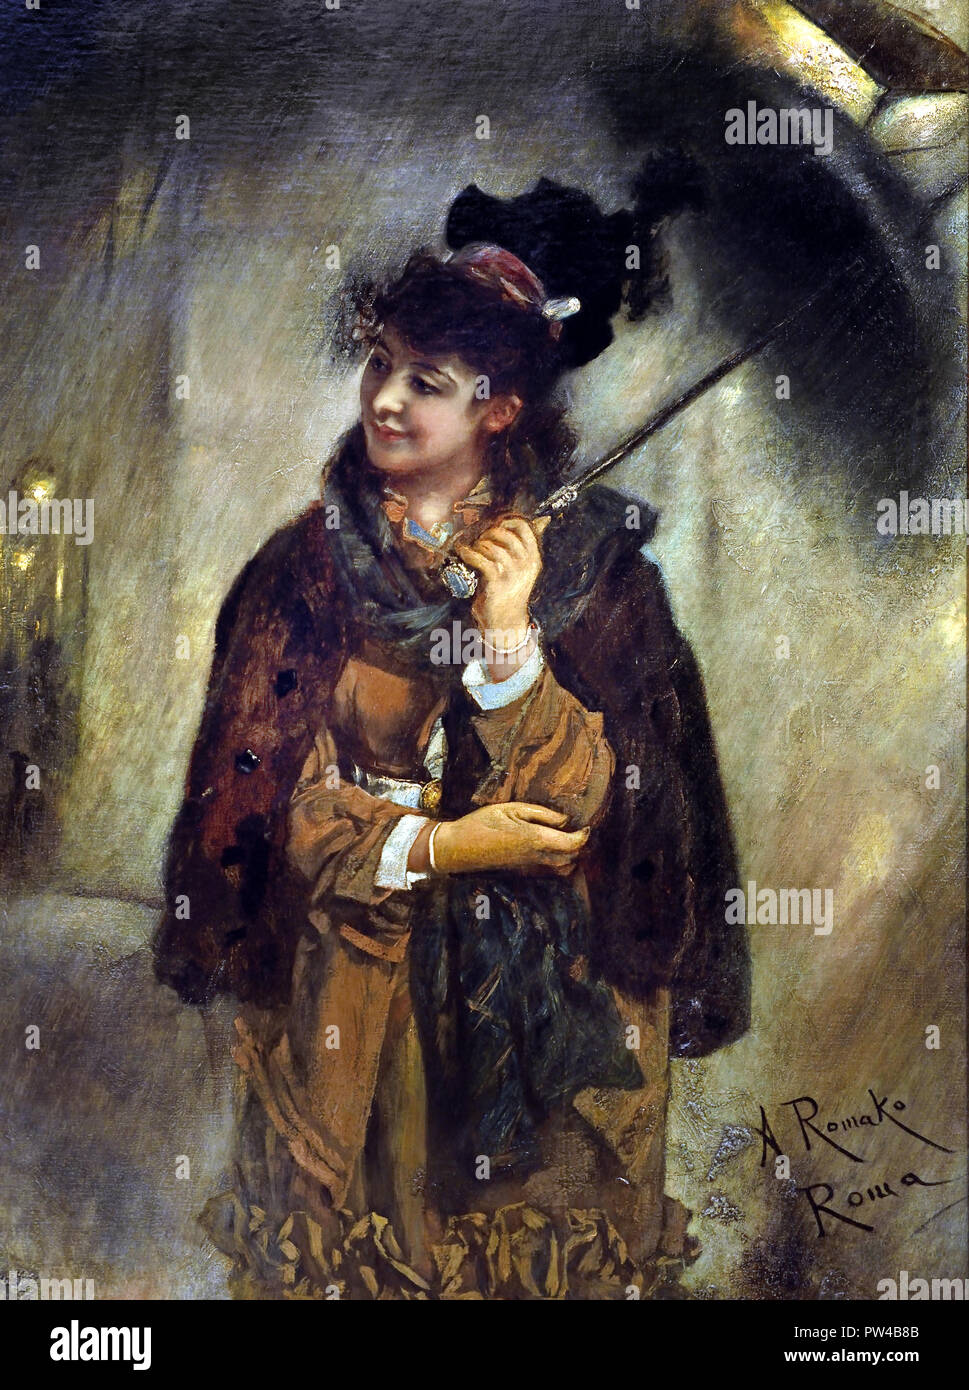 Young Roman Girl in the Rain (Evening on the Via Veneto) by Anton Romako 1832 – 1889  Austrian painter. Austria . ( Anton Romako was one of the great pioneers of Modernism ) - Stock Image